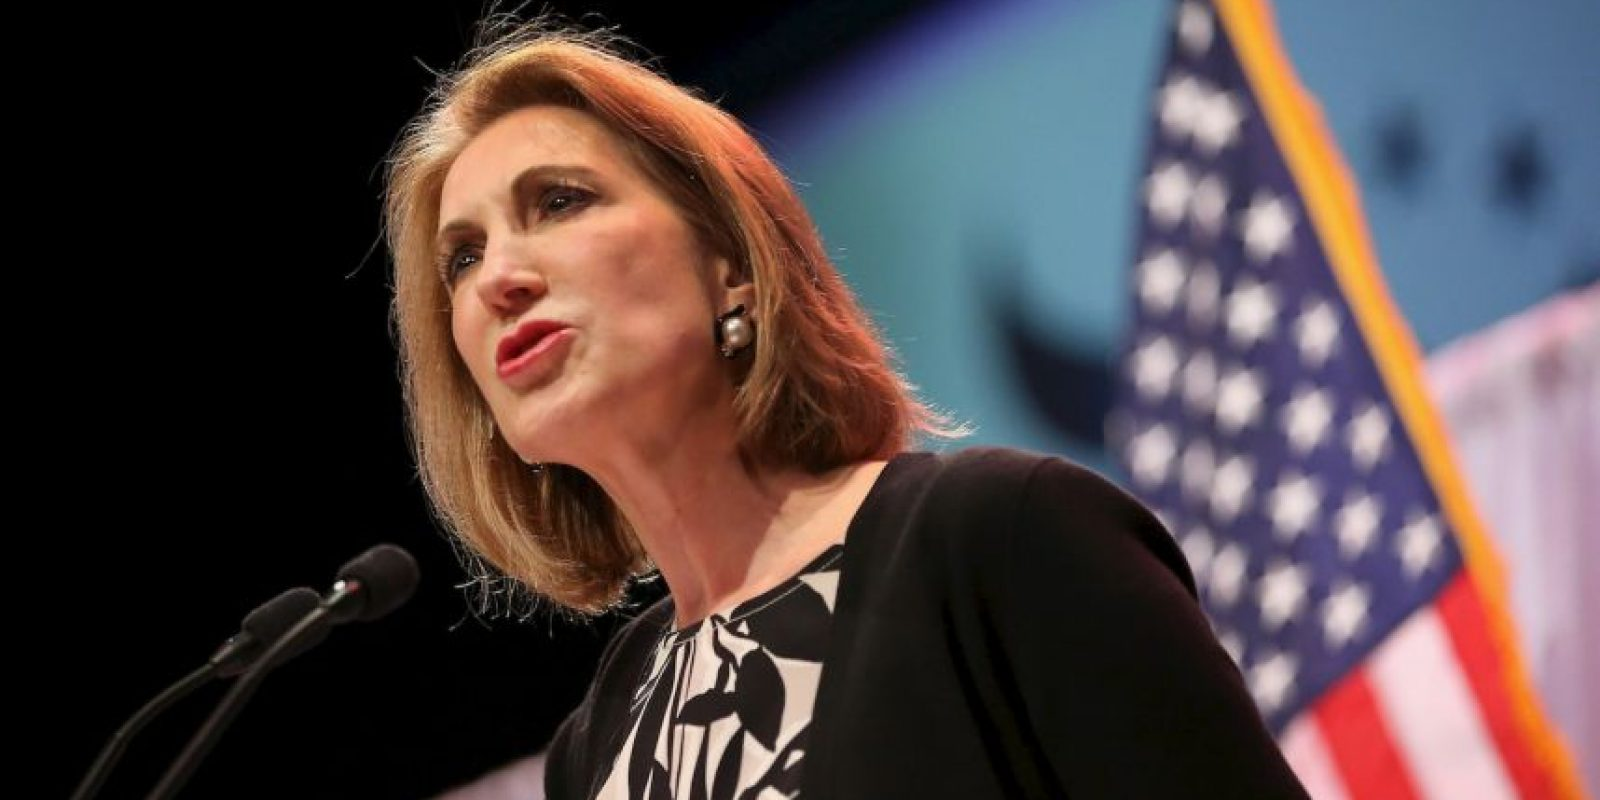 4. Carly Fiorina Foto:Getty Images